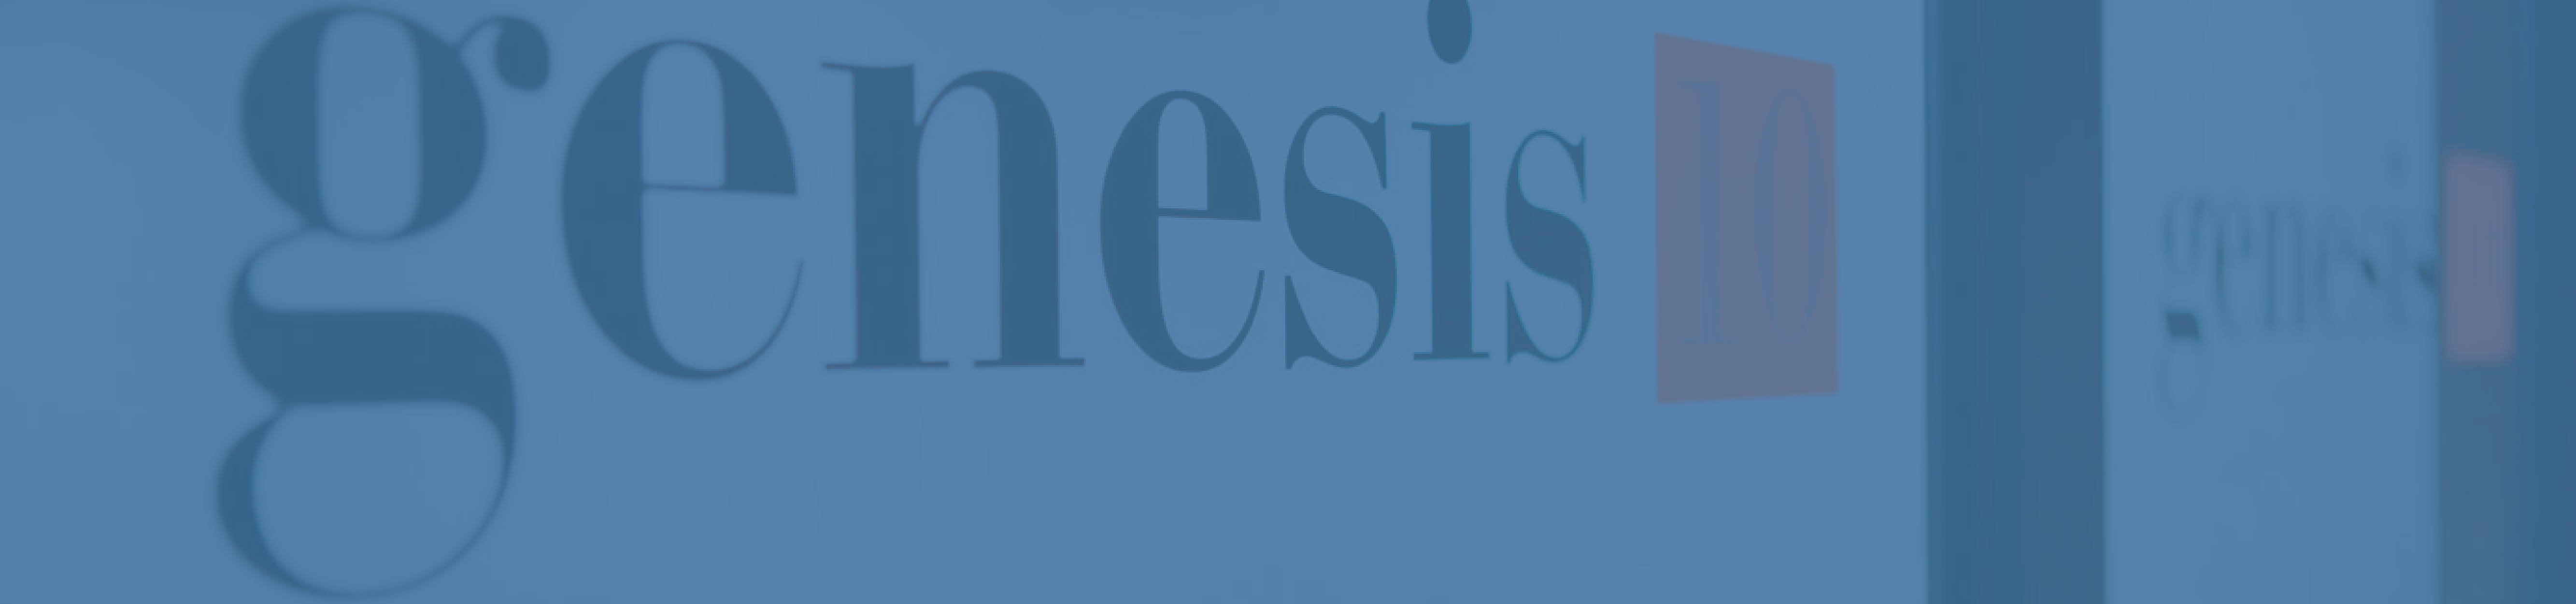 Subscribe to the Genesis10 Blog